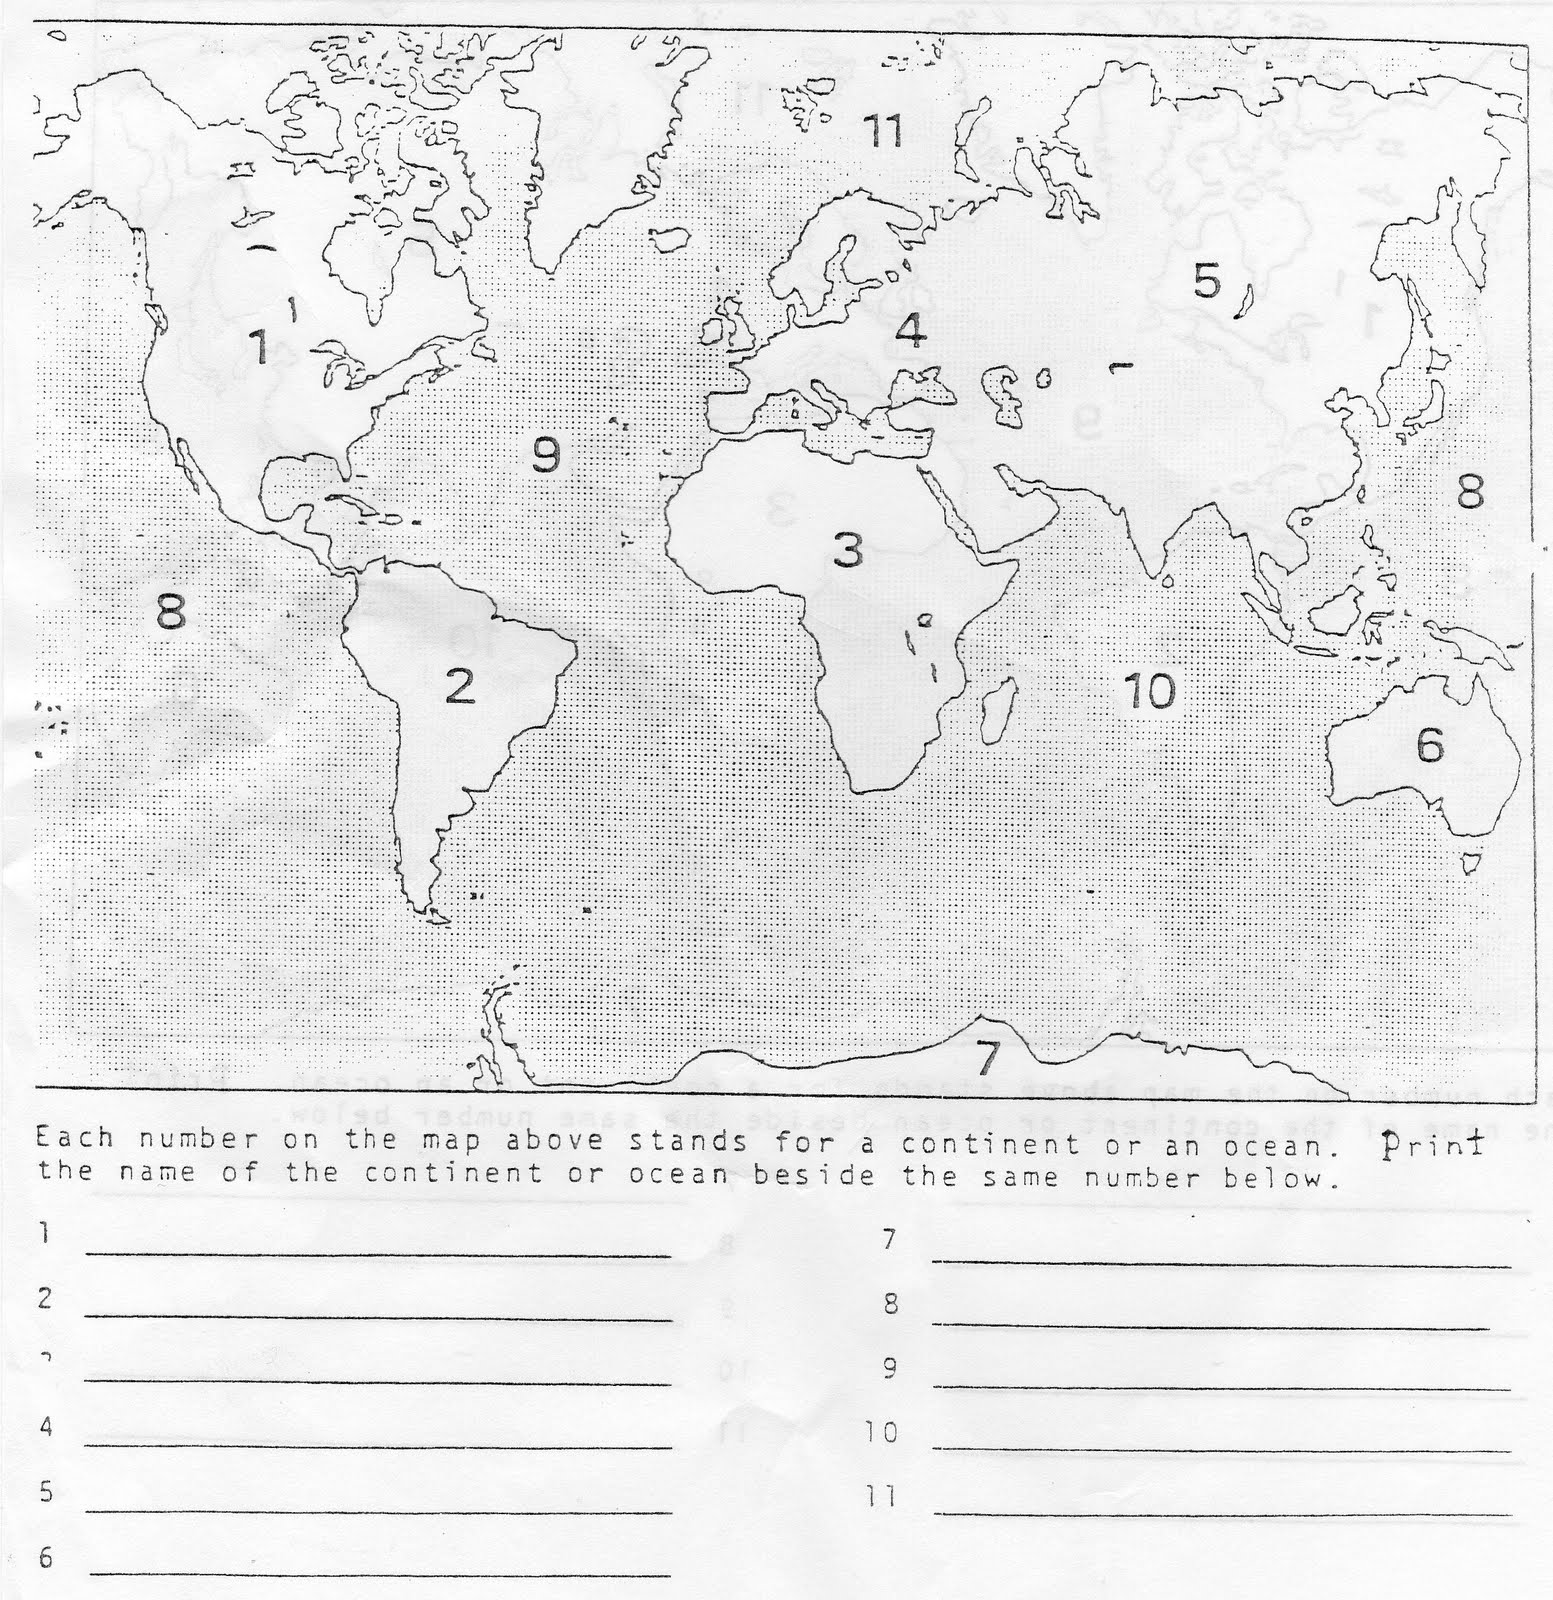 medium resolution of Continents And Oceans Worksheets 5th Grade   Printable Worksheets and  Activities for Teachers